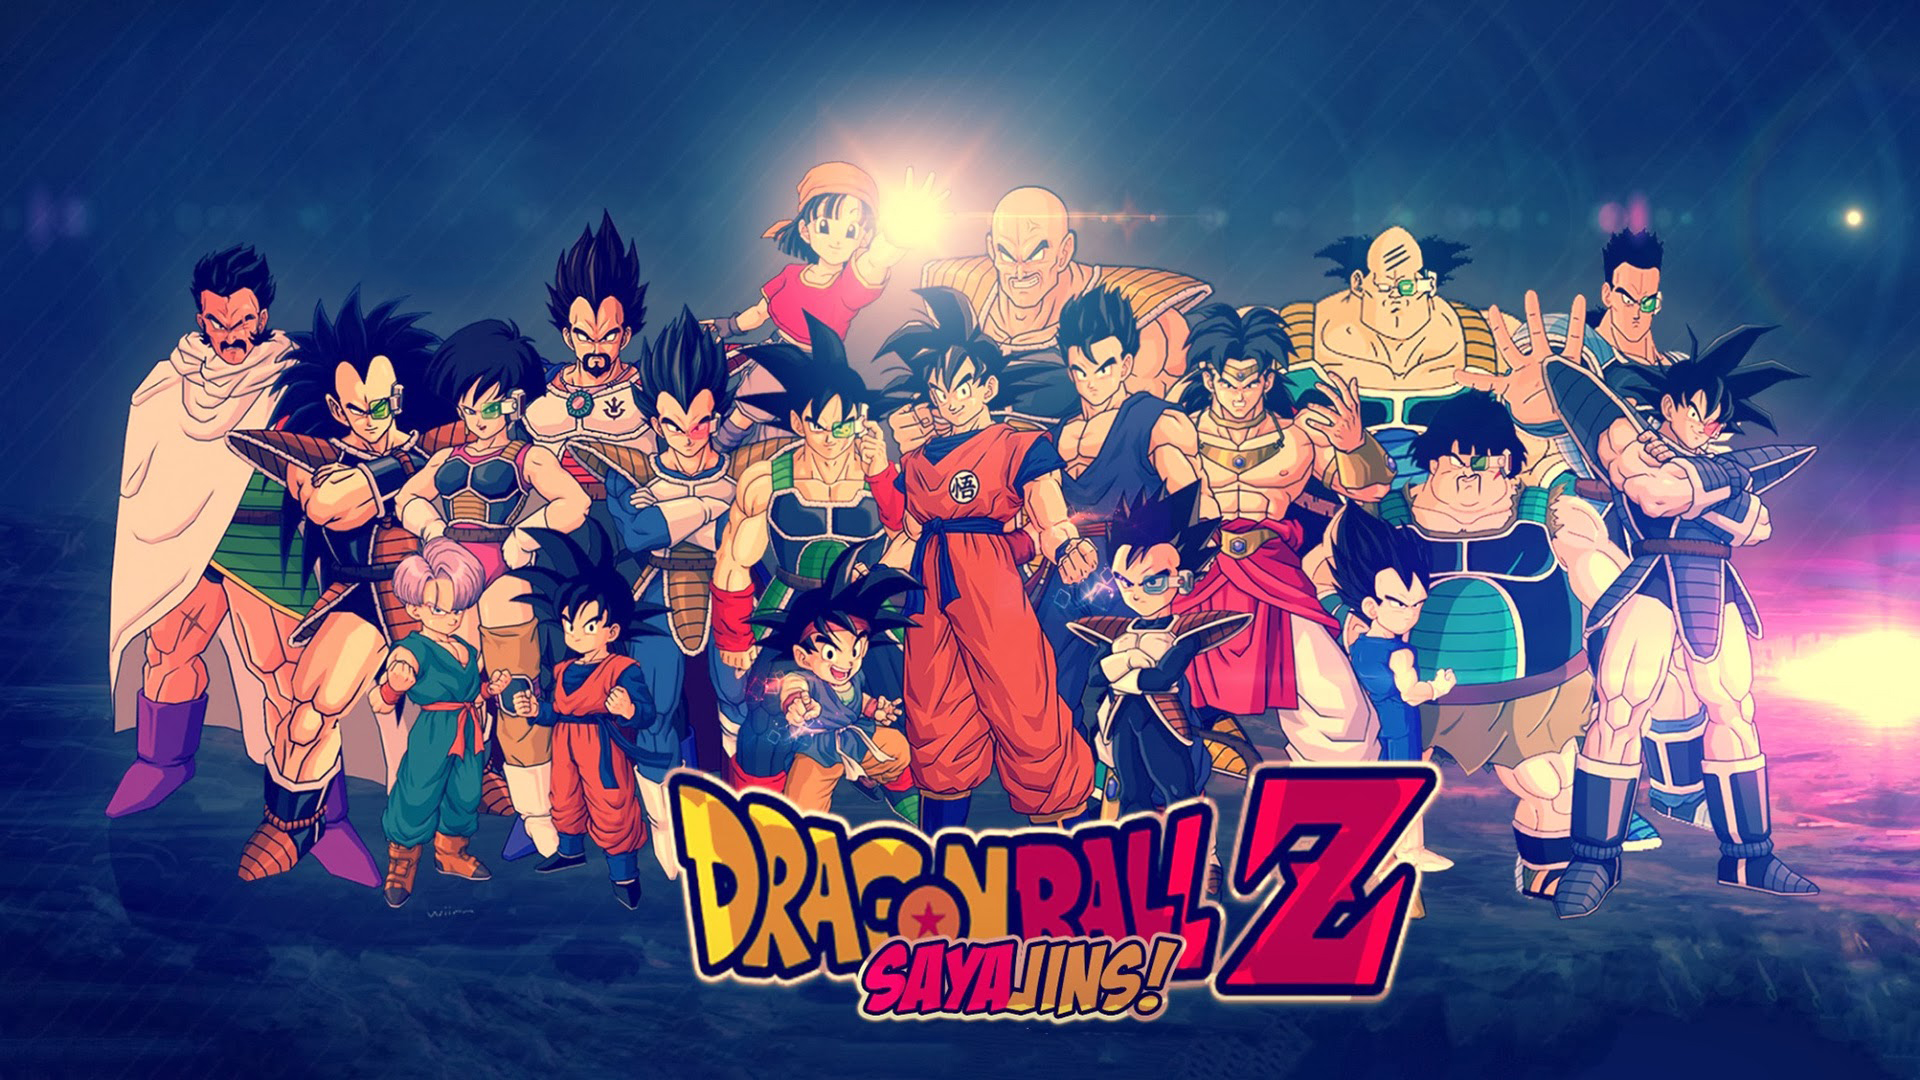 358 vegeta dragon ball fonds d 39 cran hd arri re plans wallpaper abyss - Photo dragon ball z ...